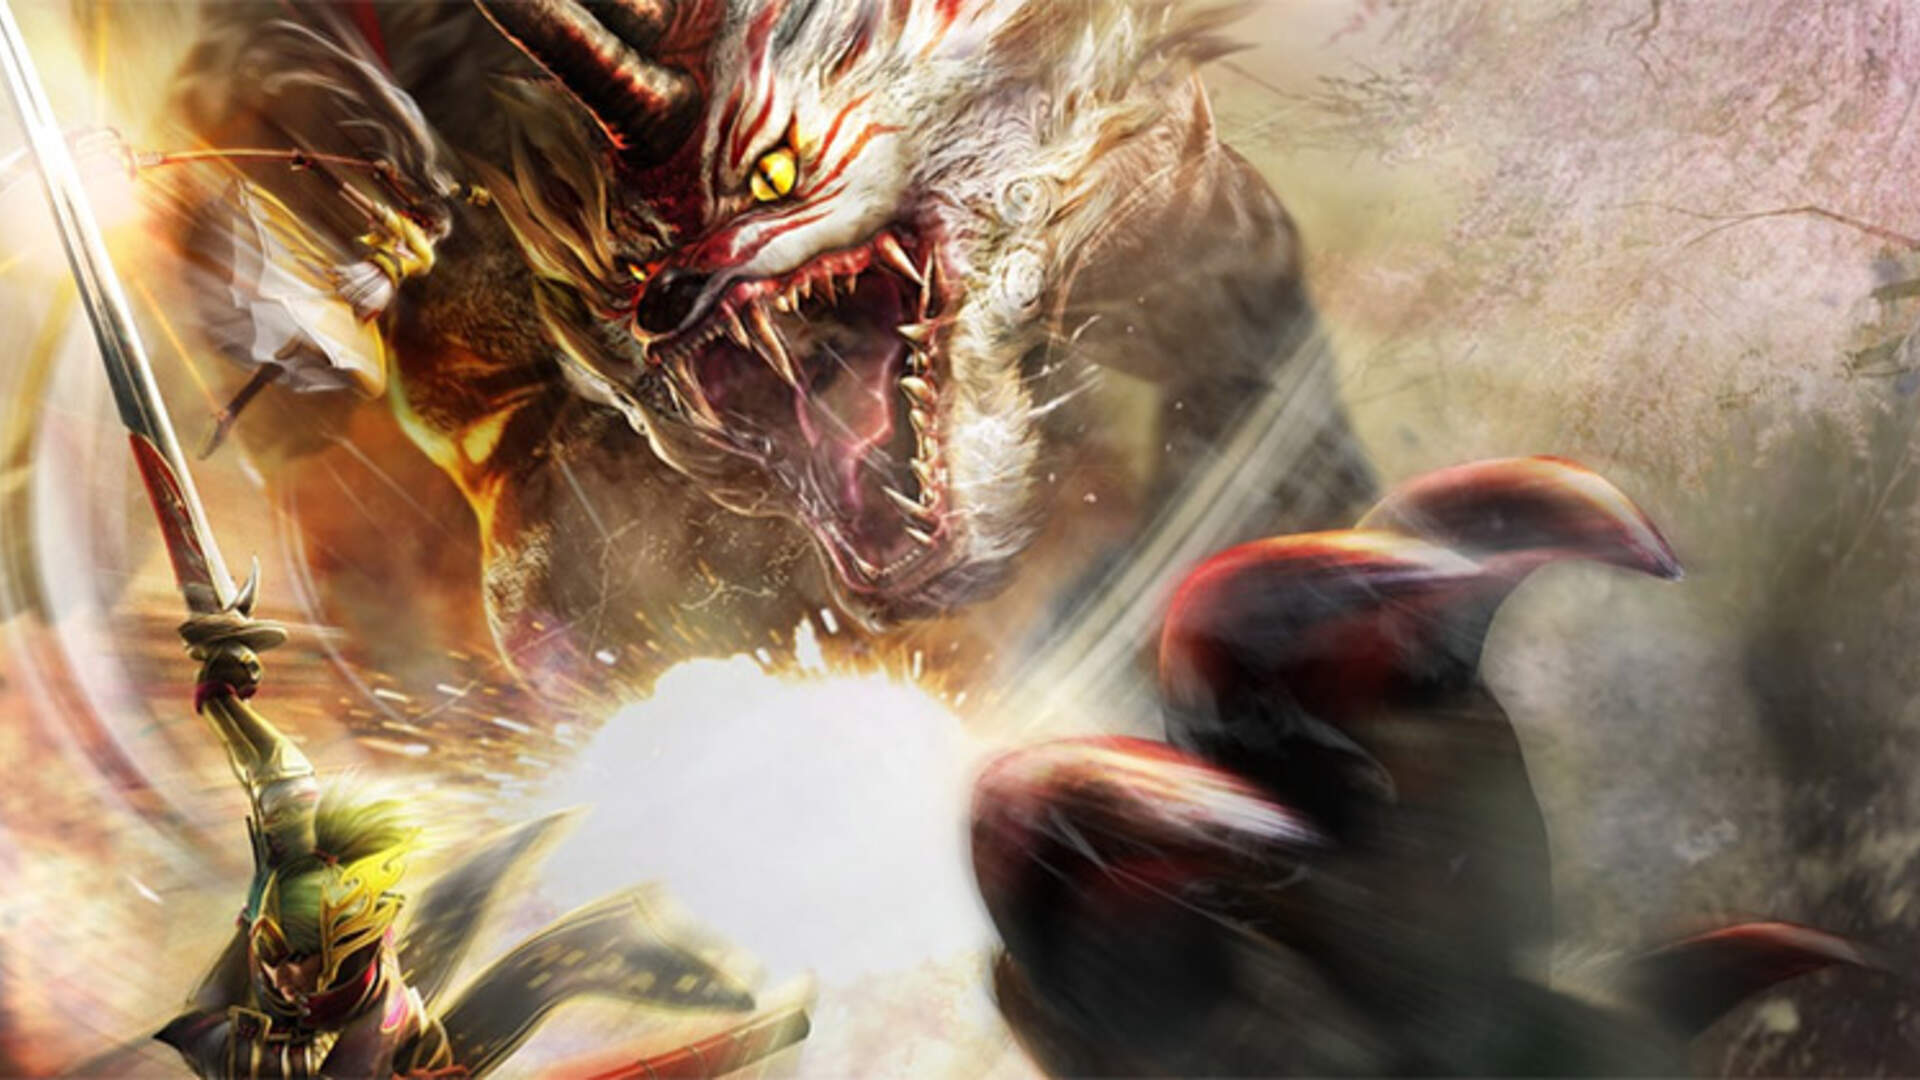 Toukiden: Kiwami is Monster Hunter for People Who Don't Have Time for Monster Hunter